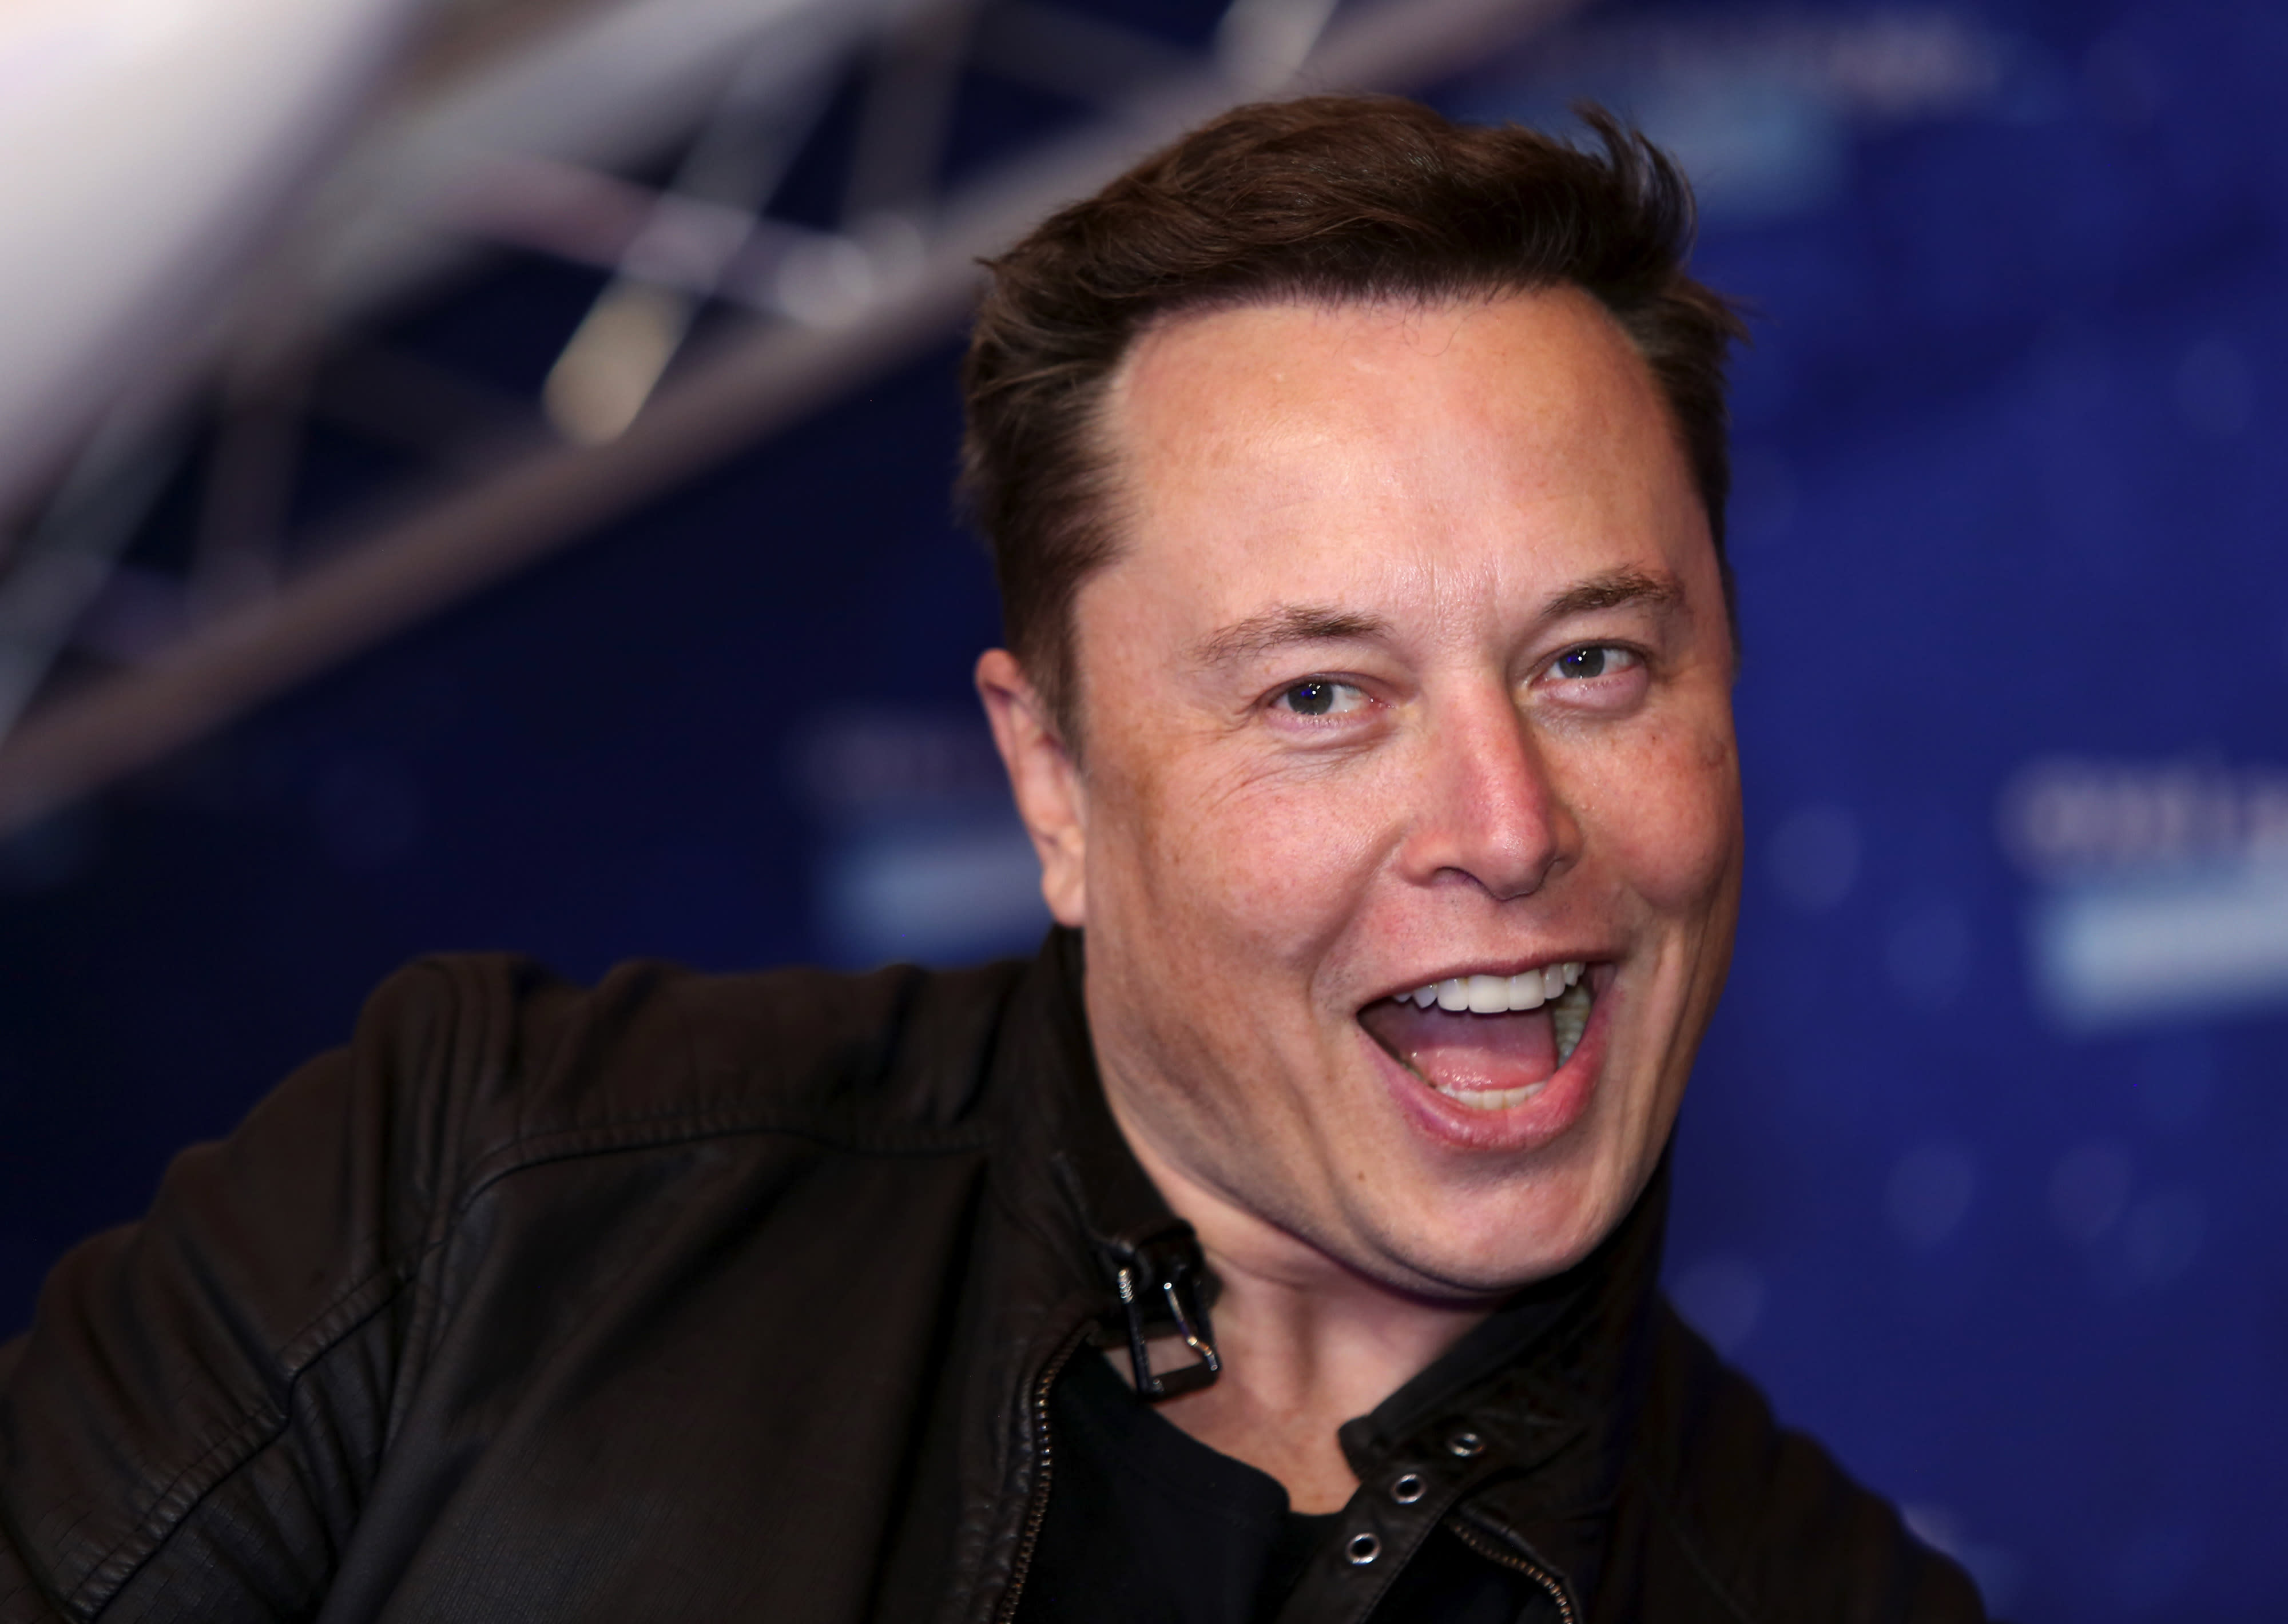 Elon Musk to host 'Saturday Night Live' on May 8 – CNBC